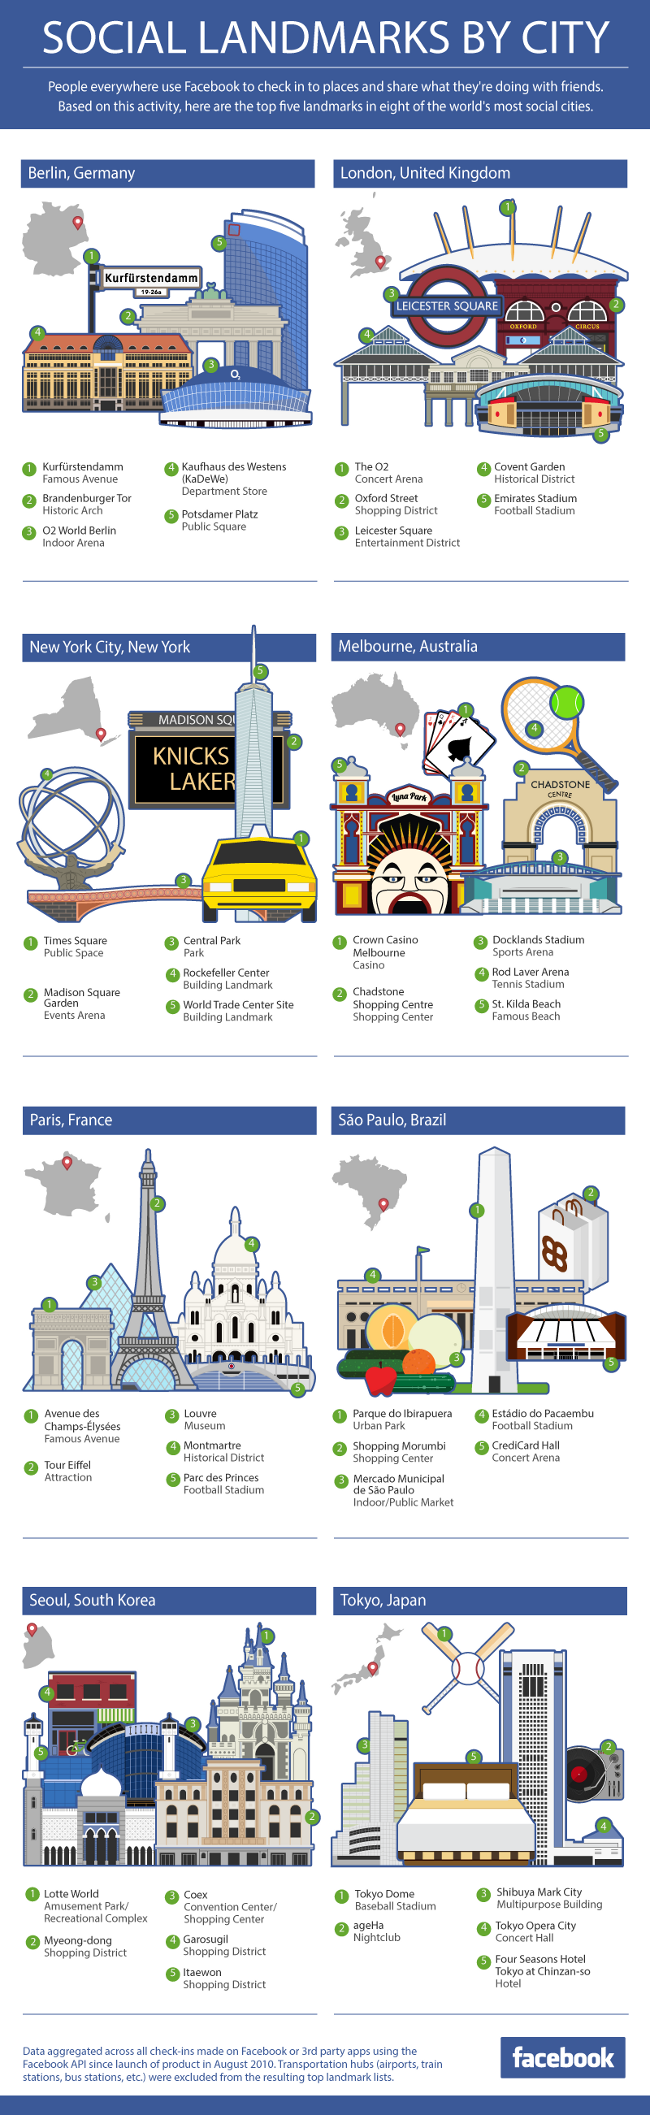 Social-Landmarks-By-City-infographic